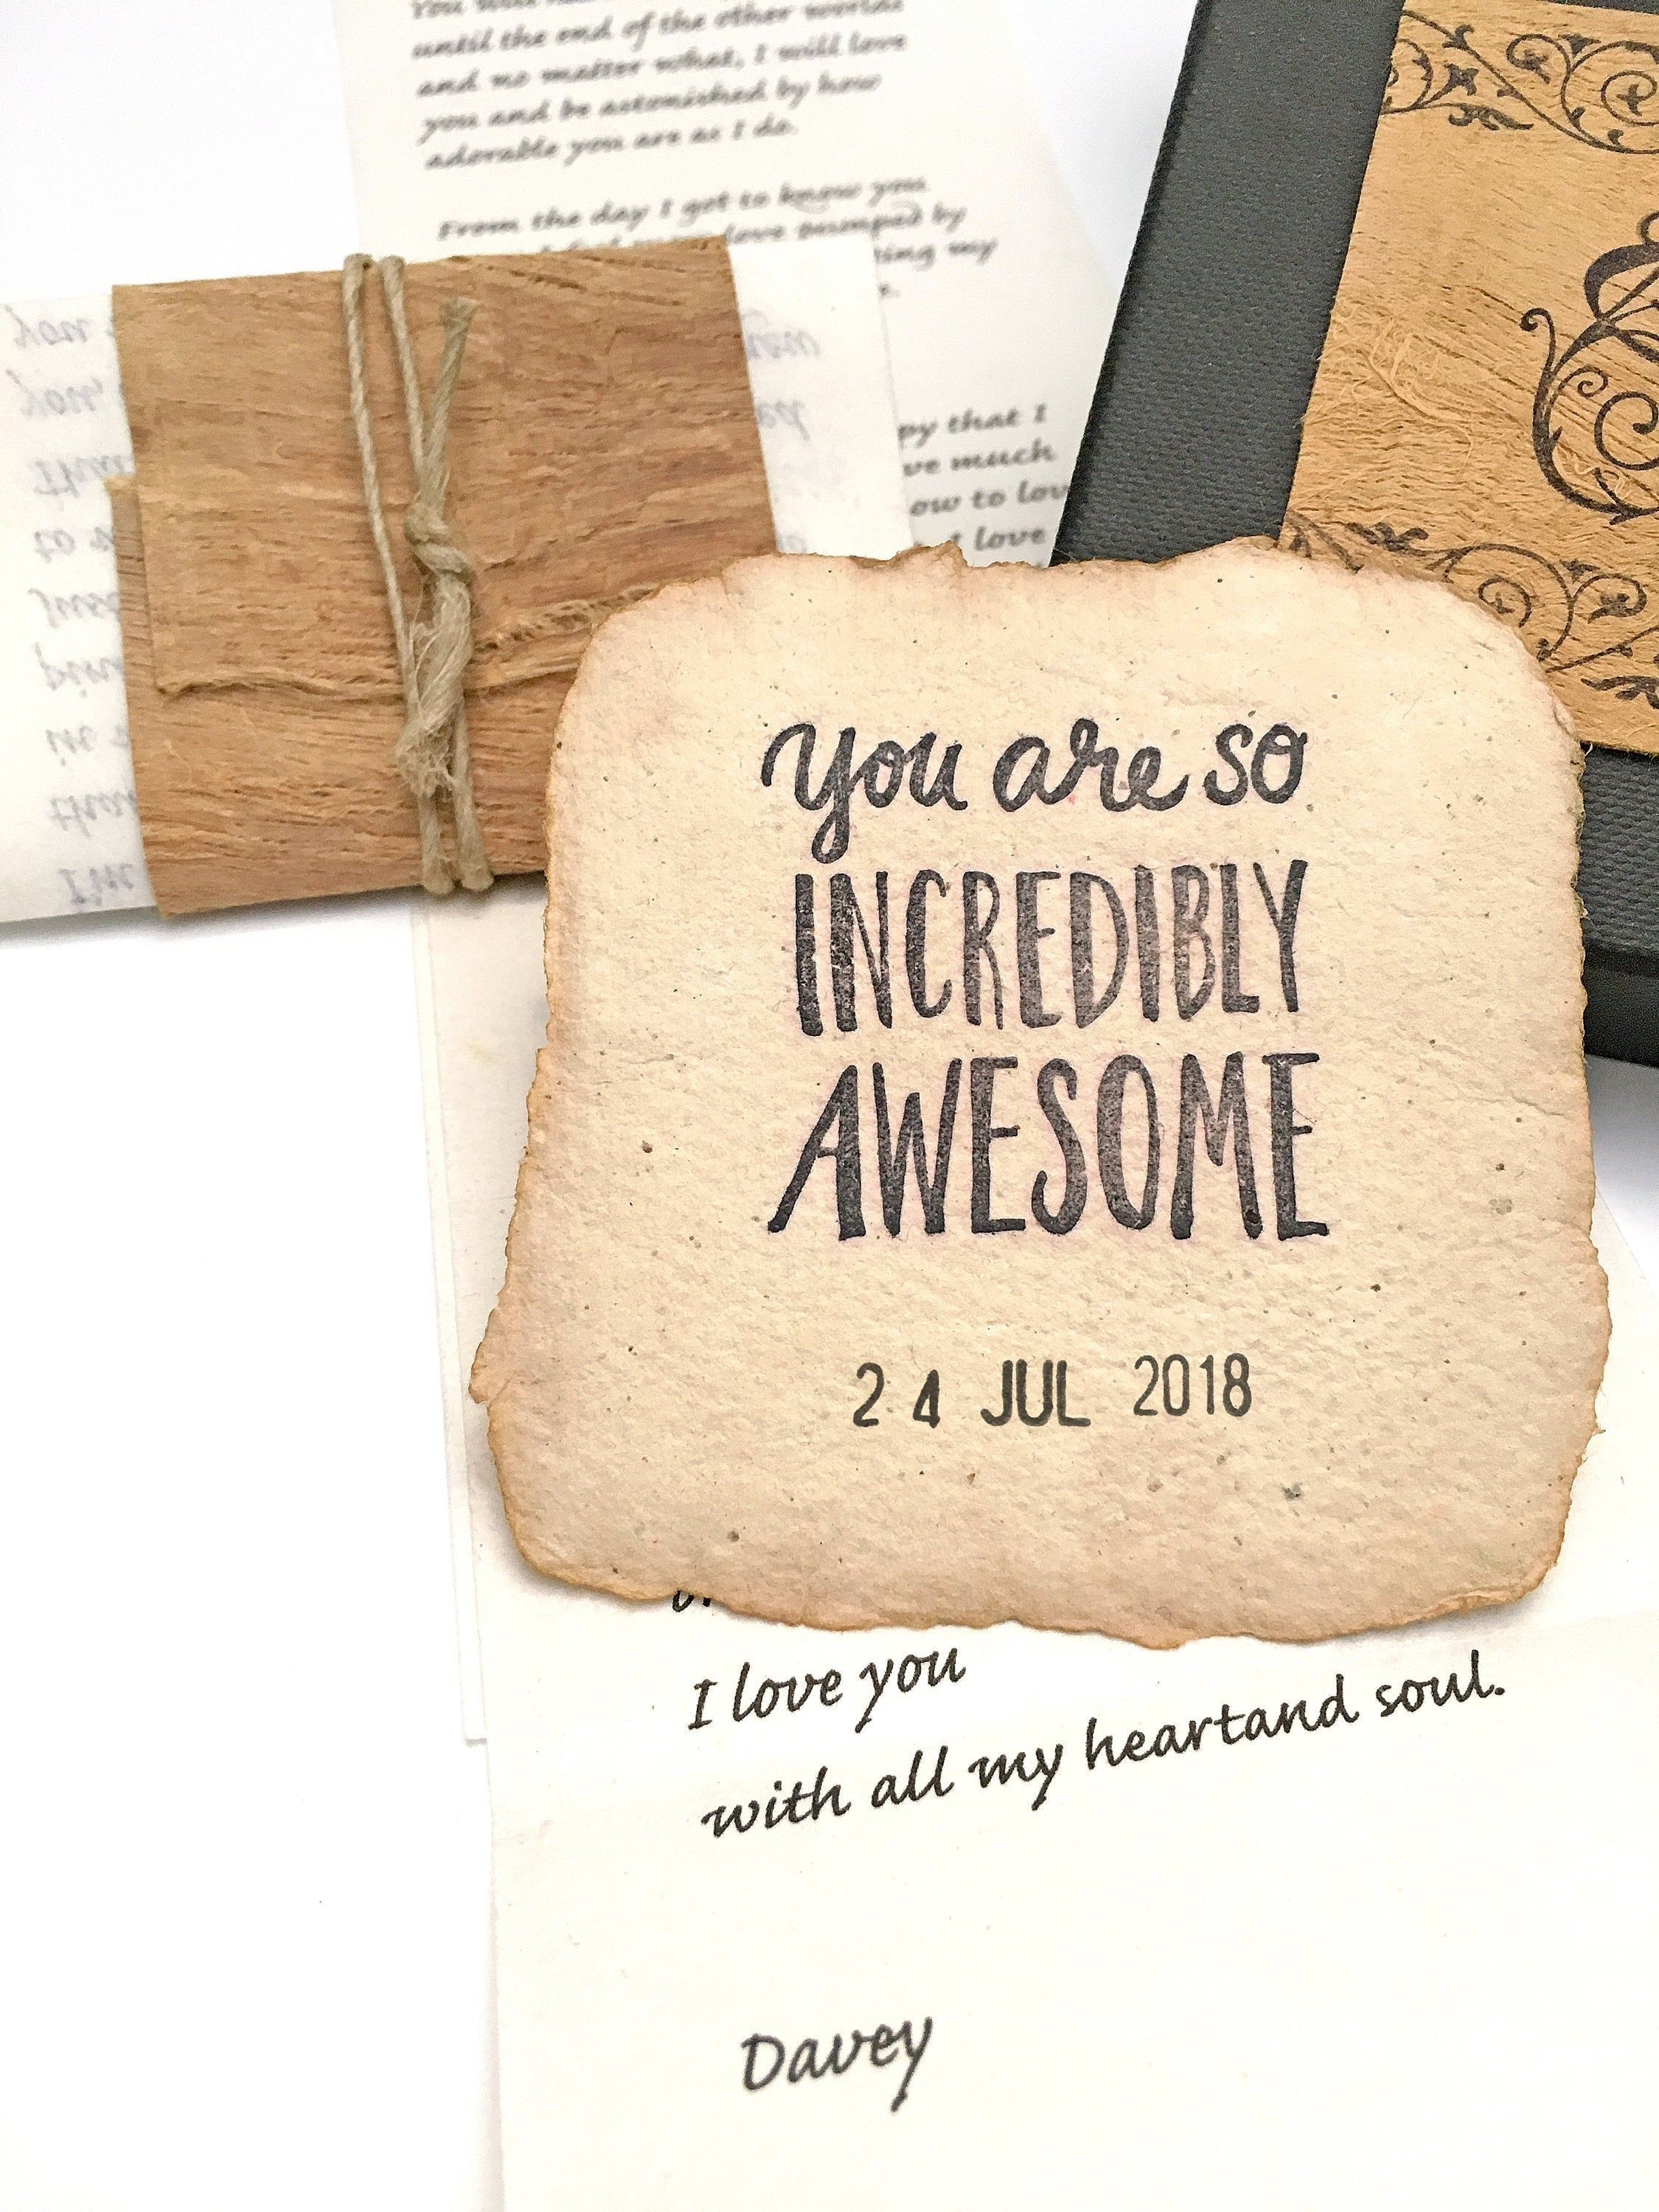 Sentimental 1 year anniversary gift for husband, Meaningful 1st anniversary together, Romantic paper wedding gift for wife, your love letter-#1ST #anniversary #gift #husband #Letter #Love #meaningful #paper #romantic #sentimental #together #wedding #Wife #year